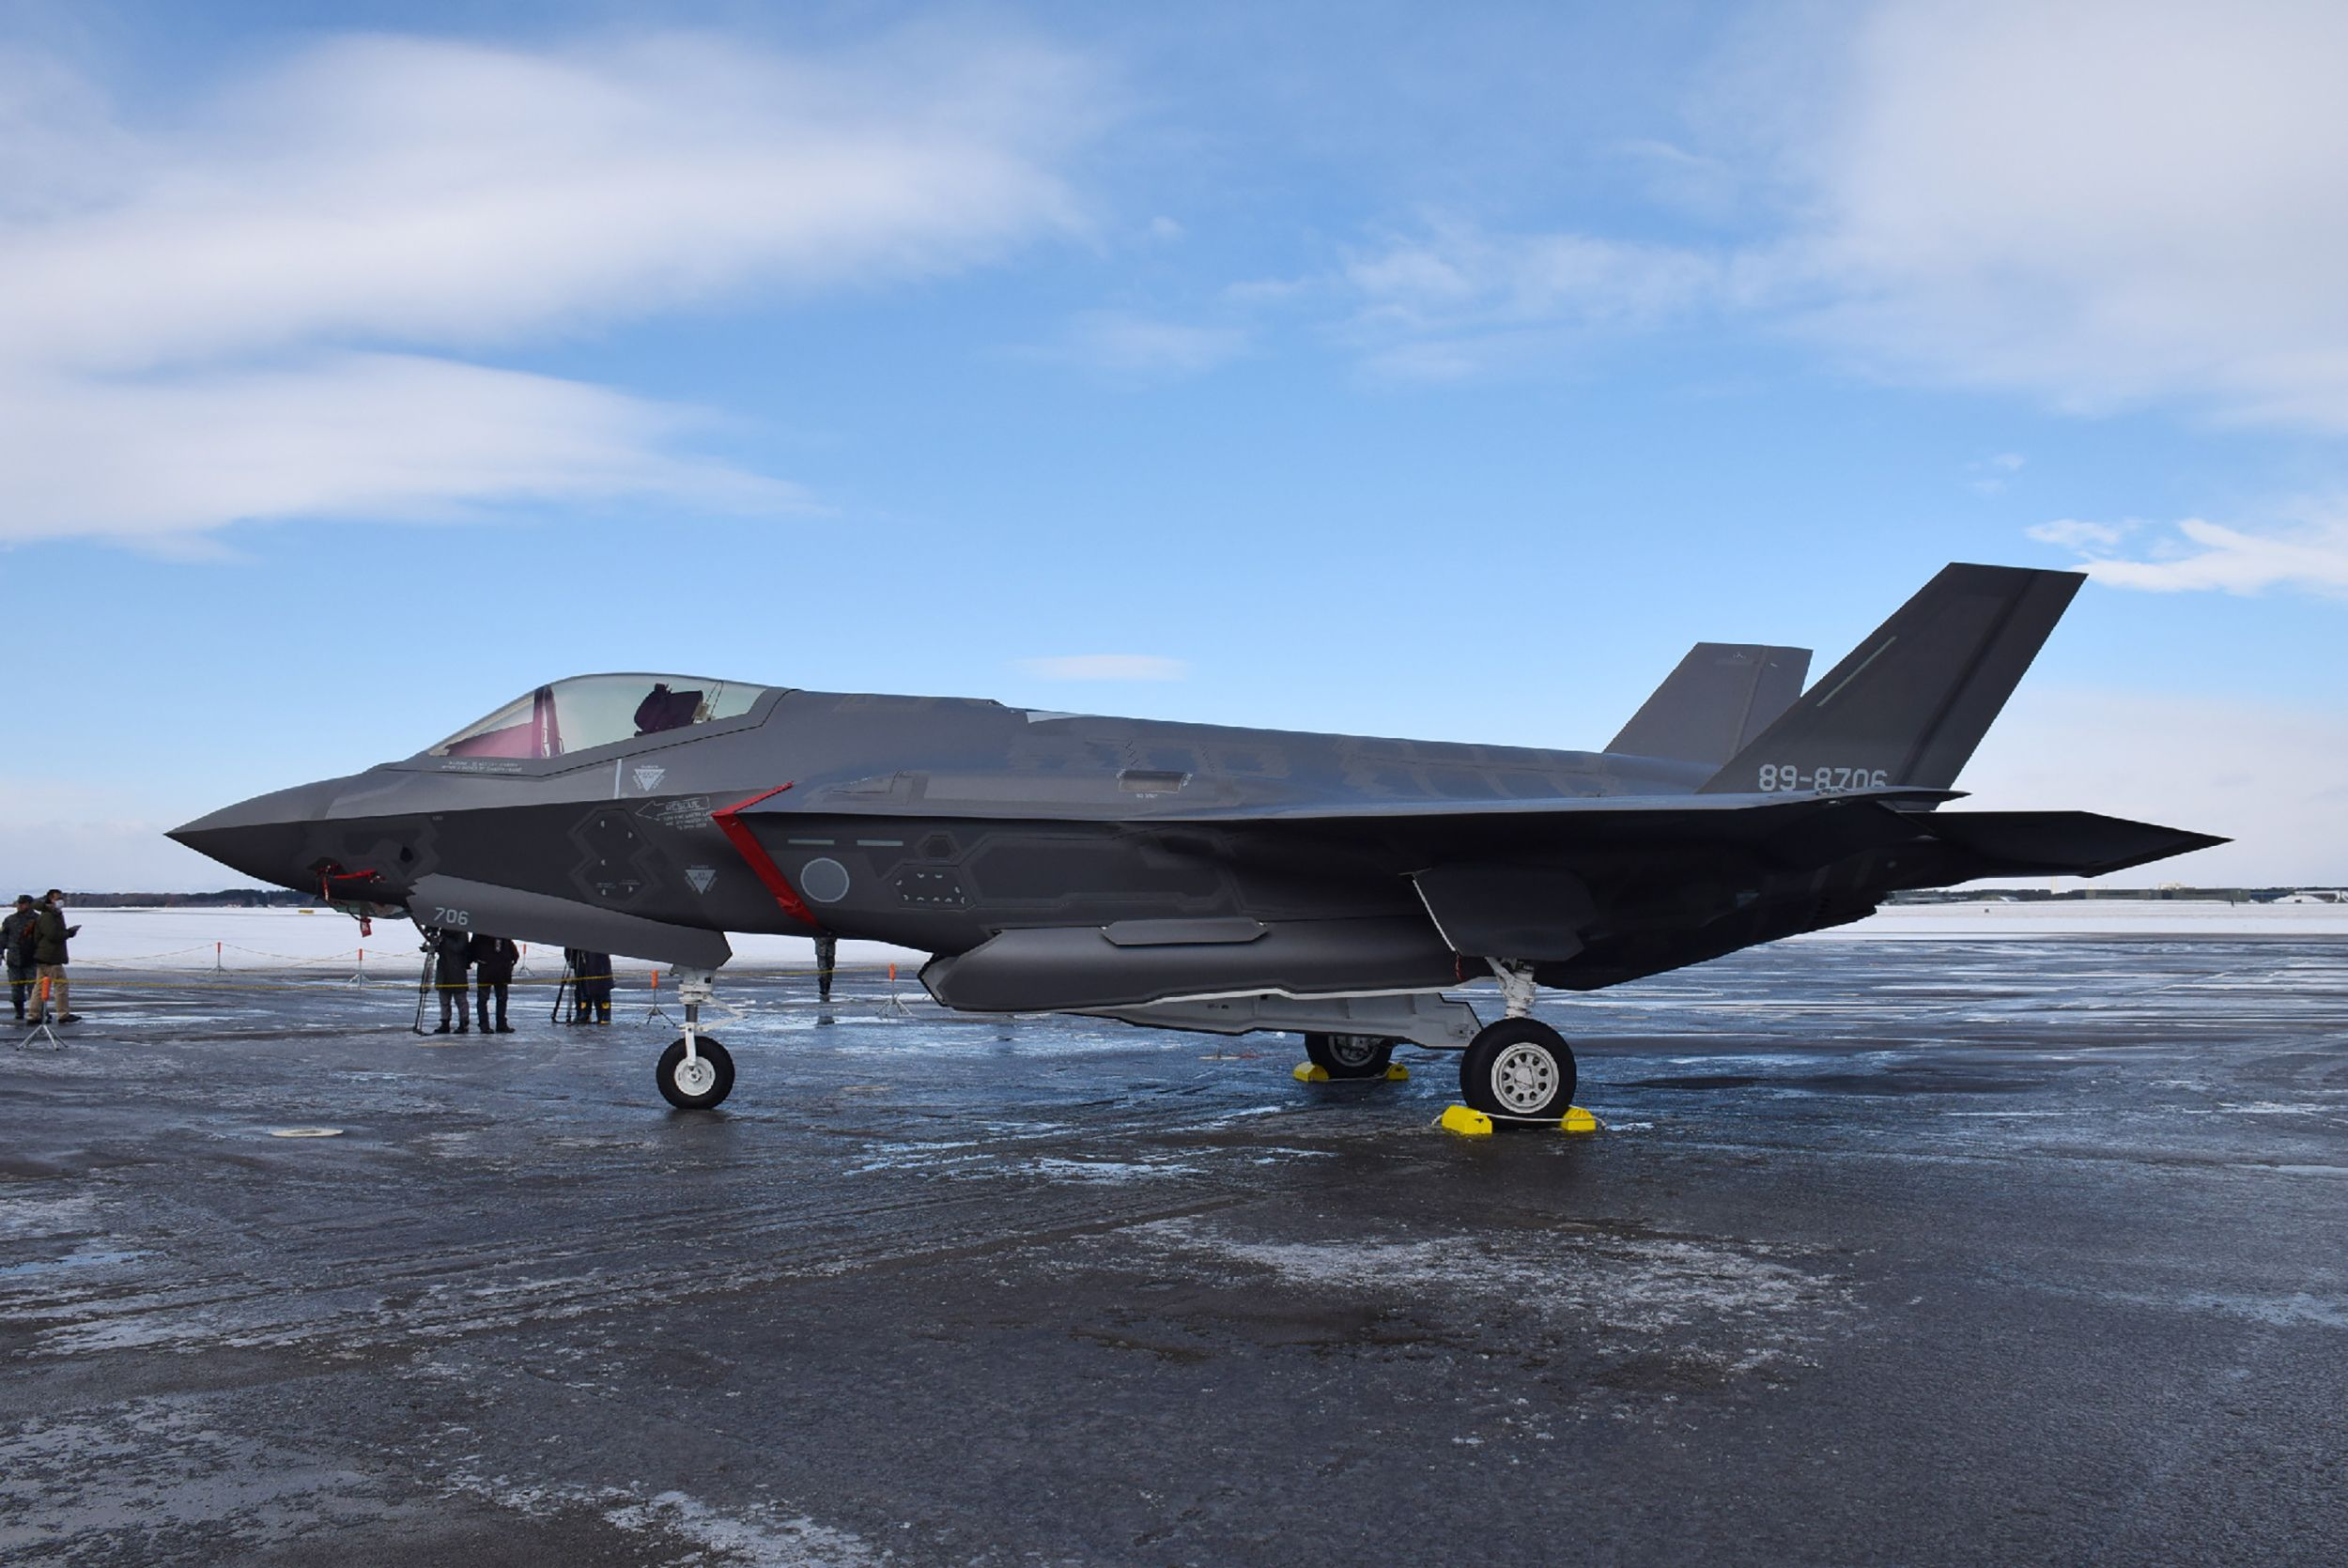 The U.S. Ends Search for Missing F-35 Fighter Jet